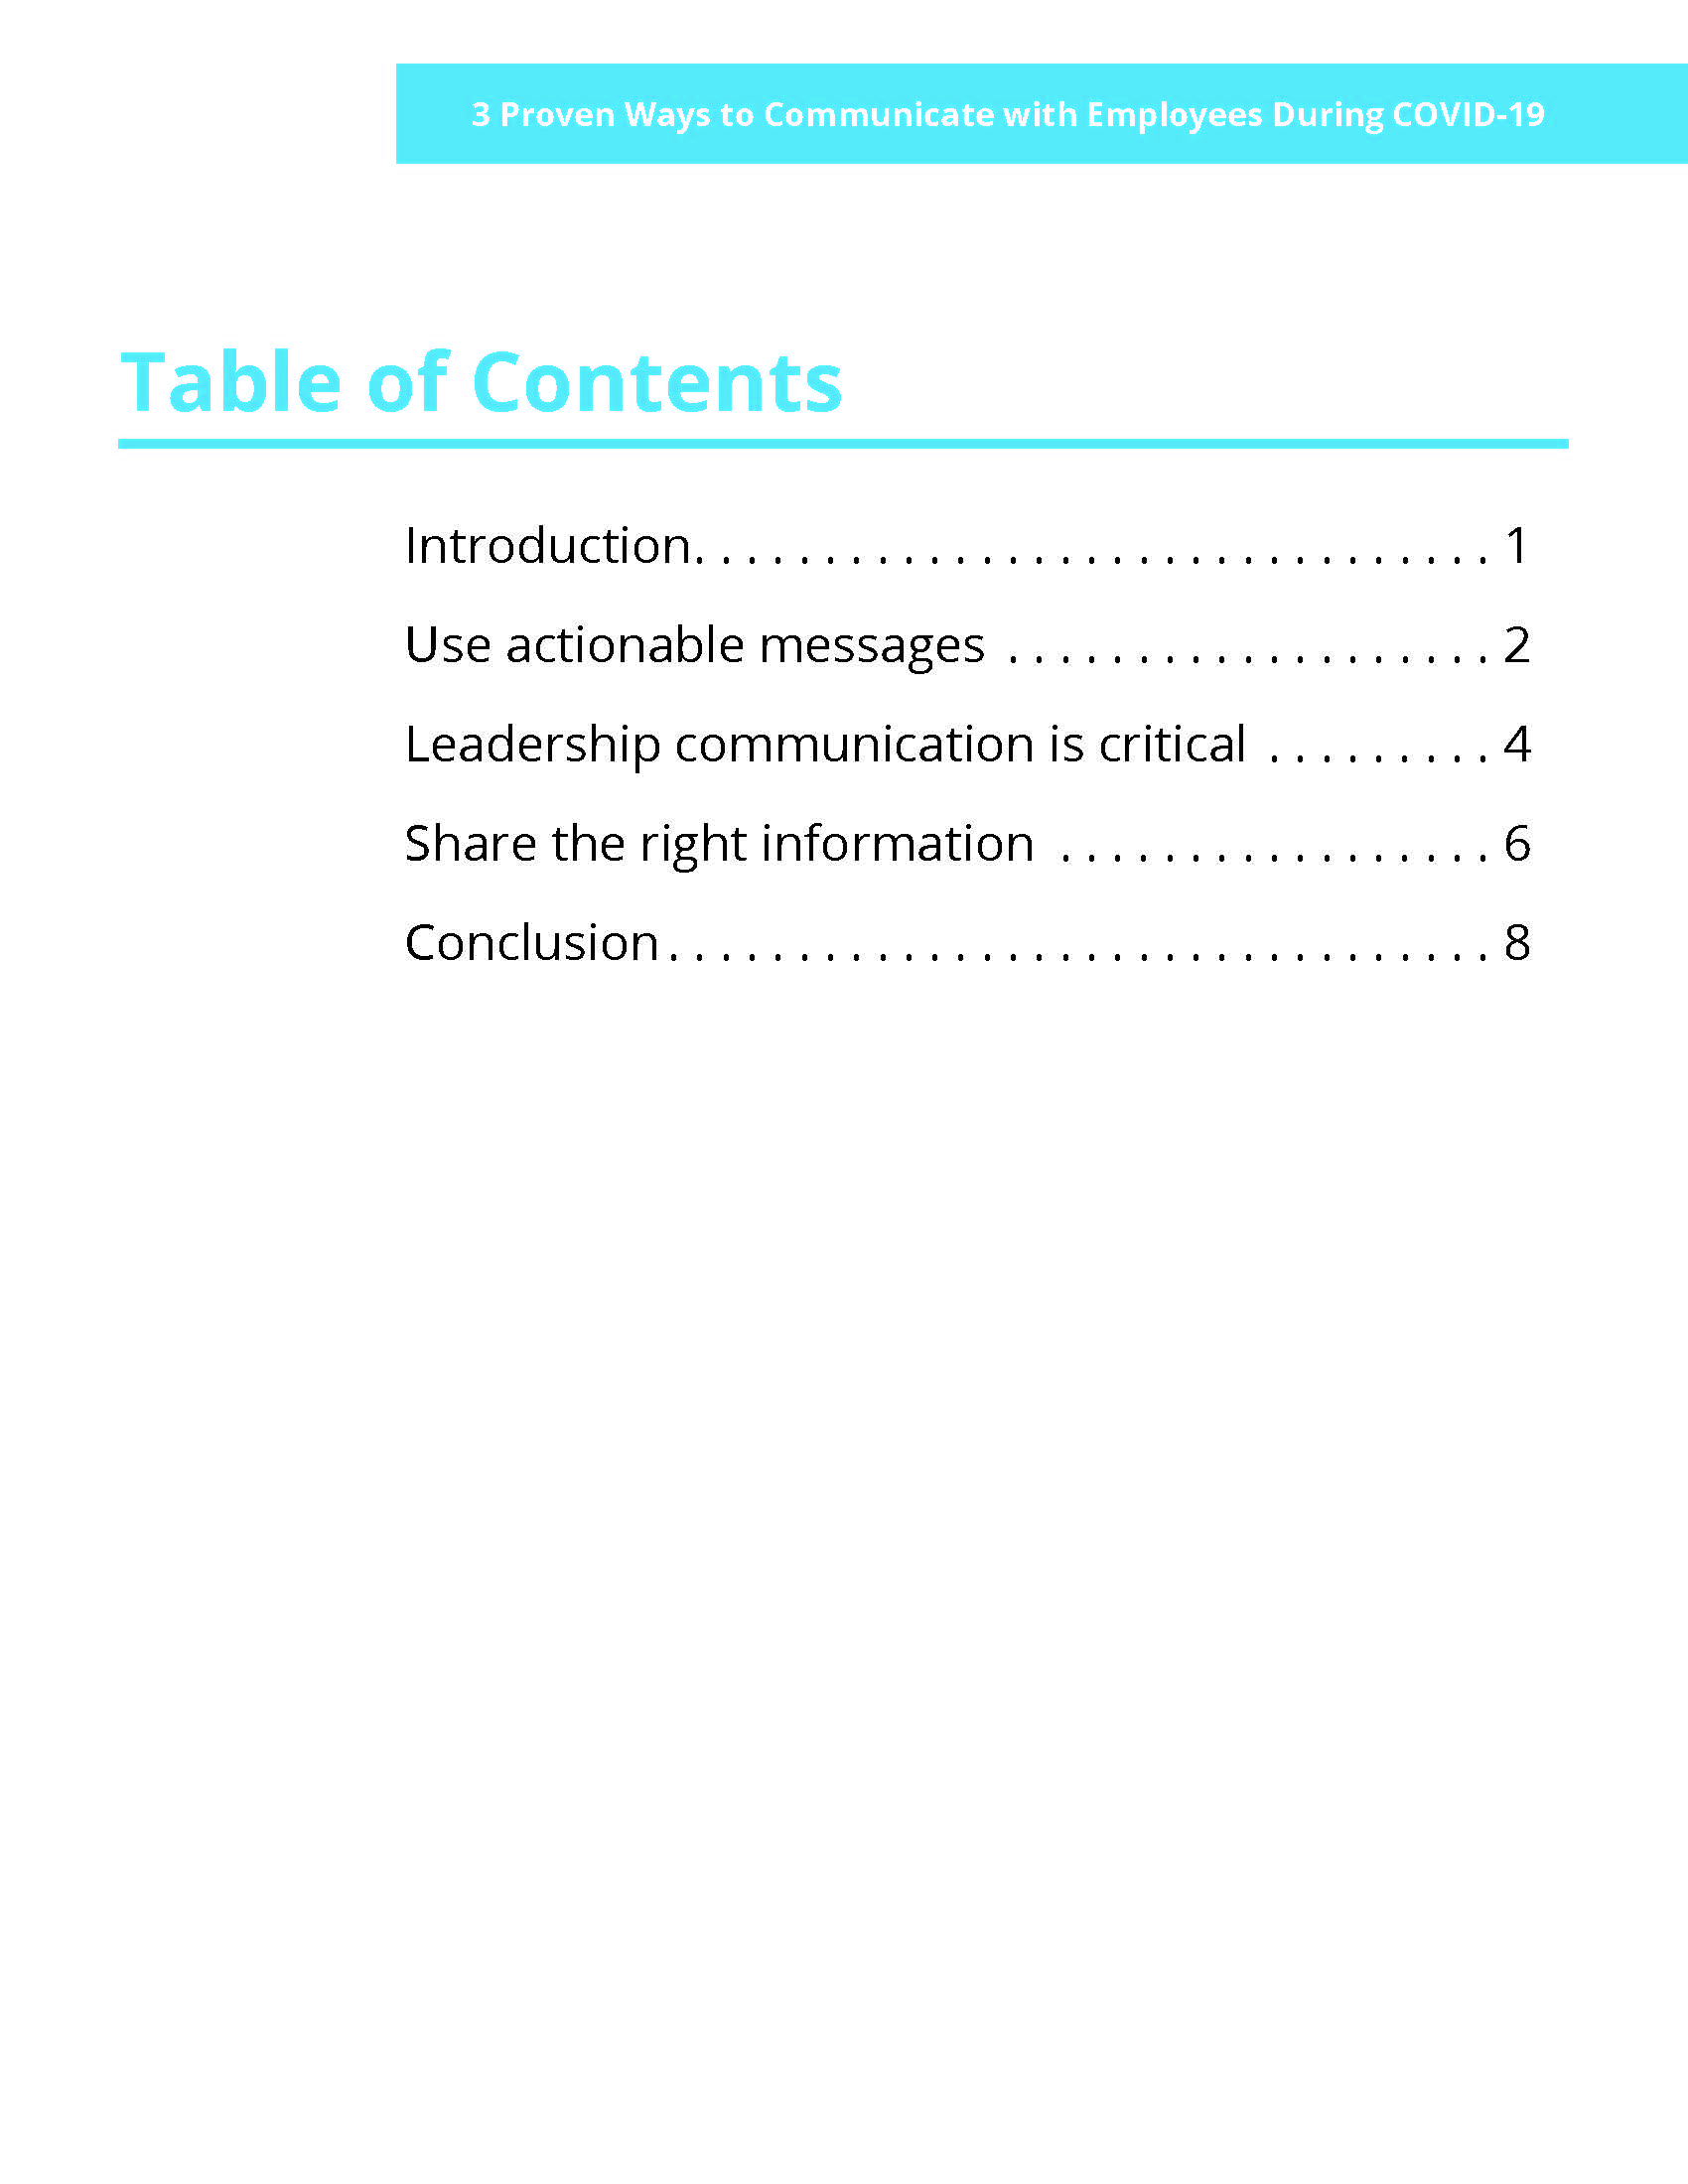 3 Proven Ways to Communicate with Employees During COVID-19 page 2